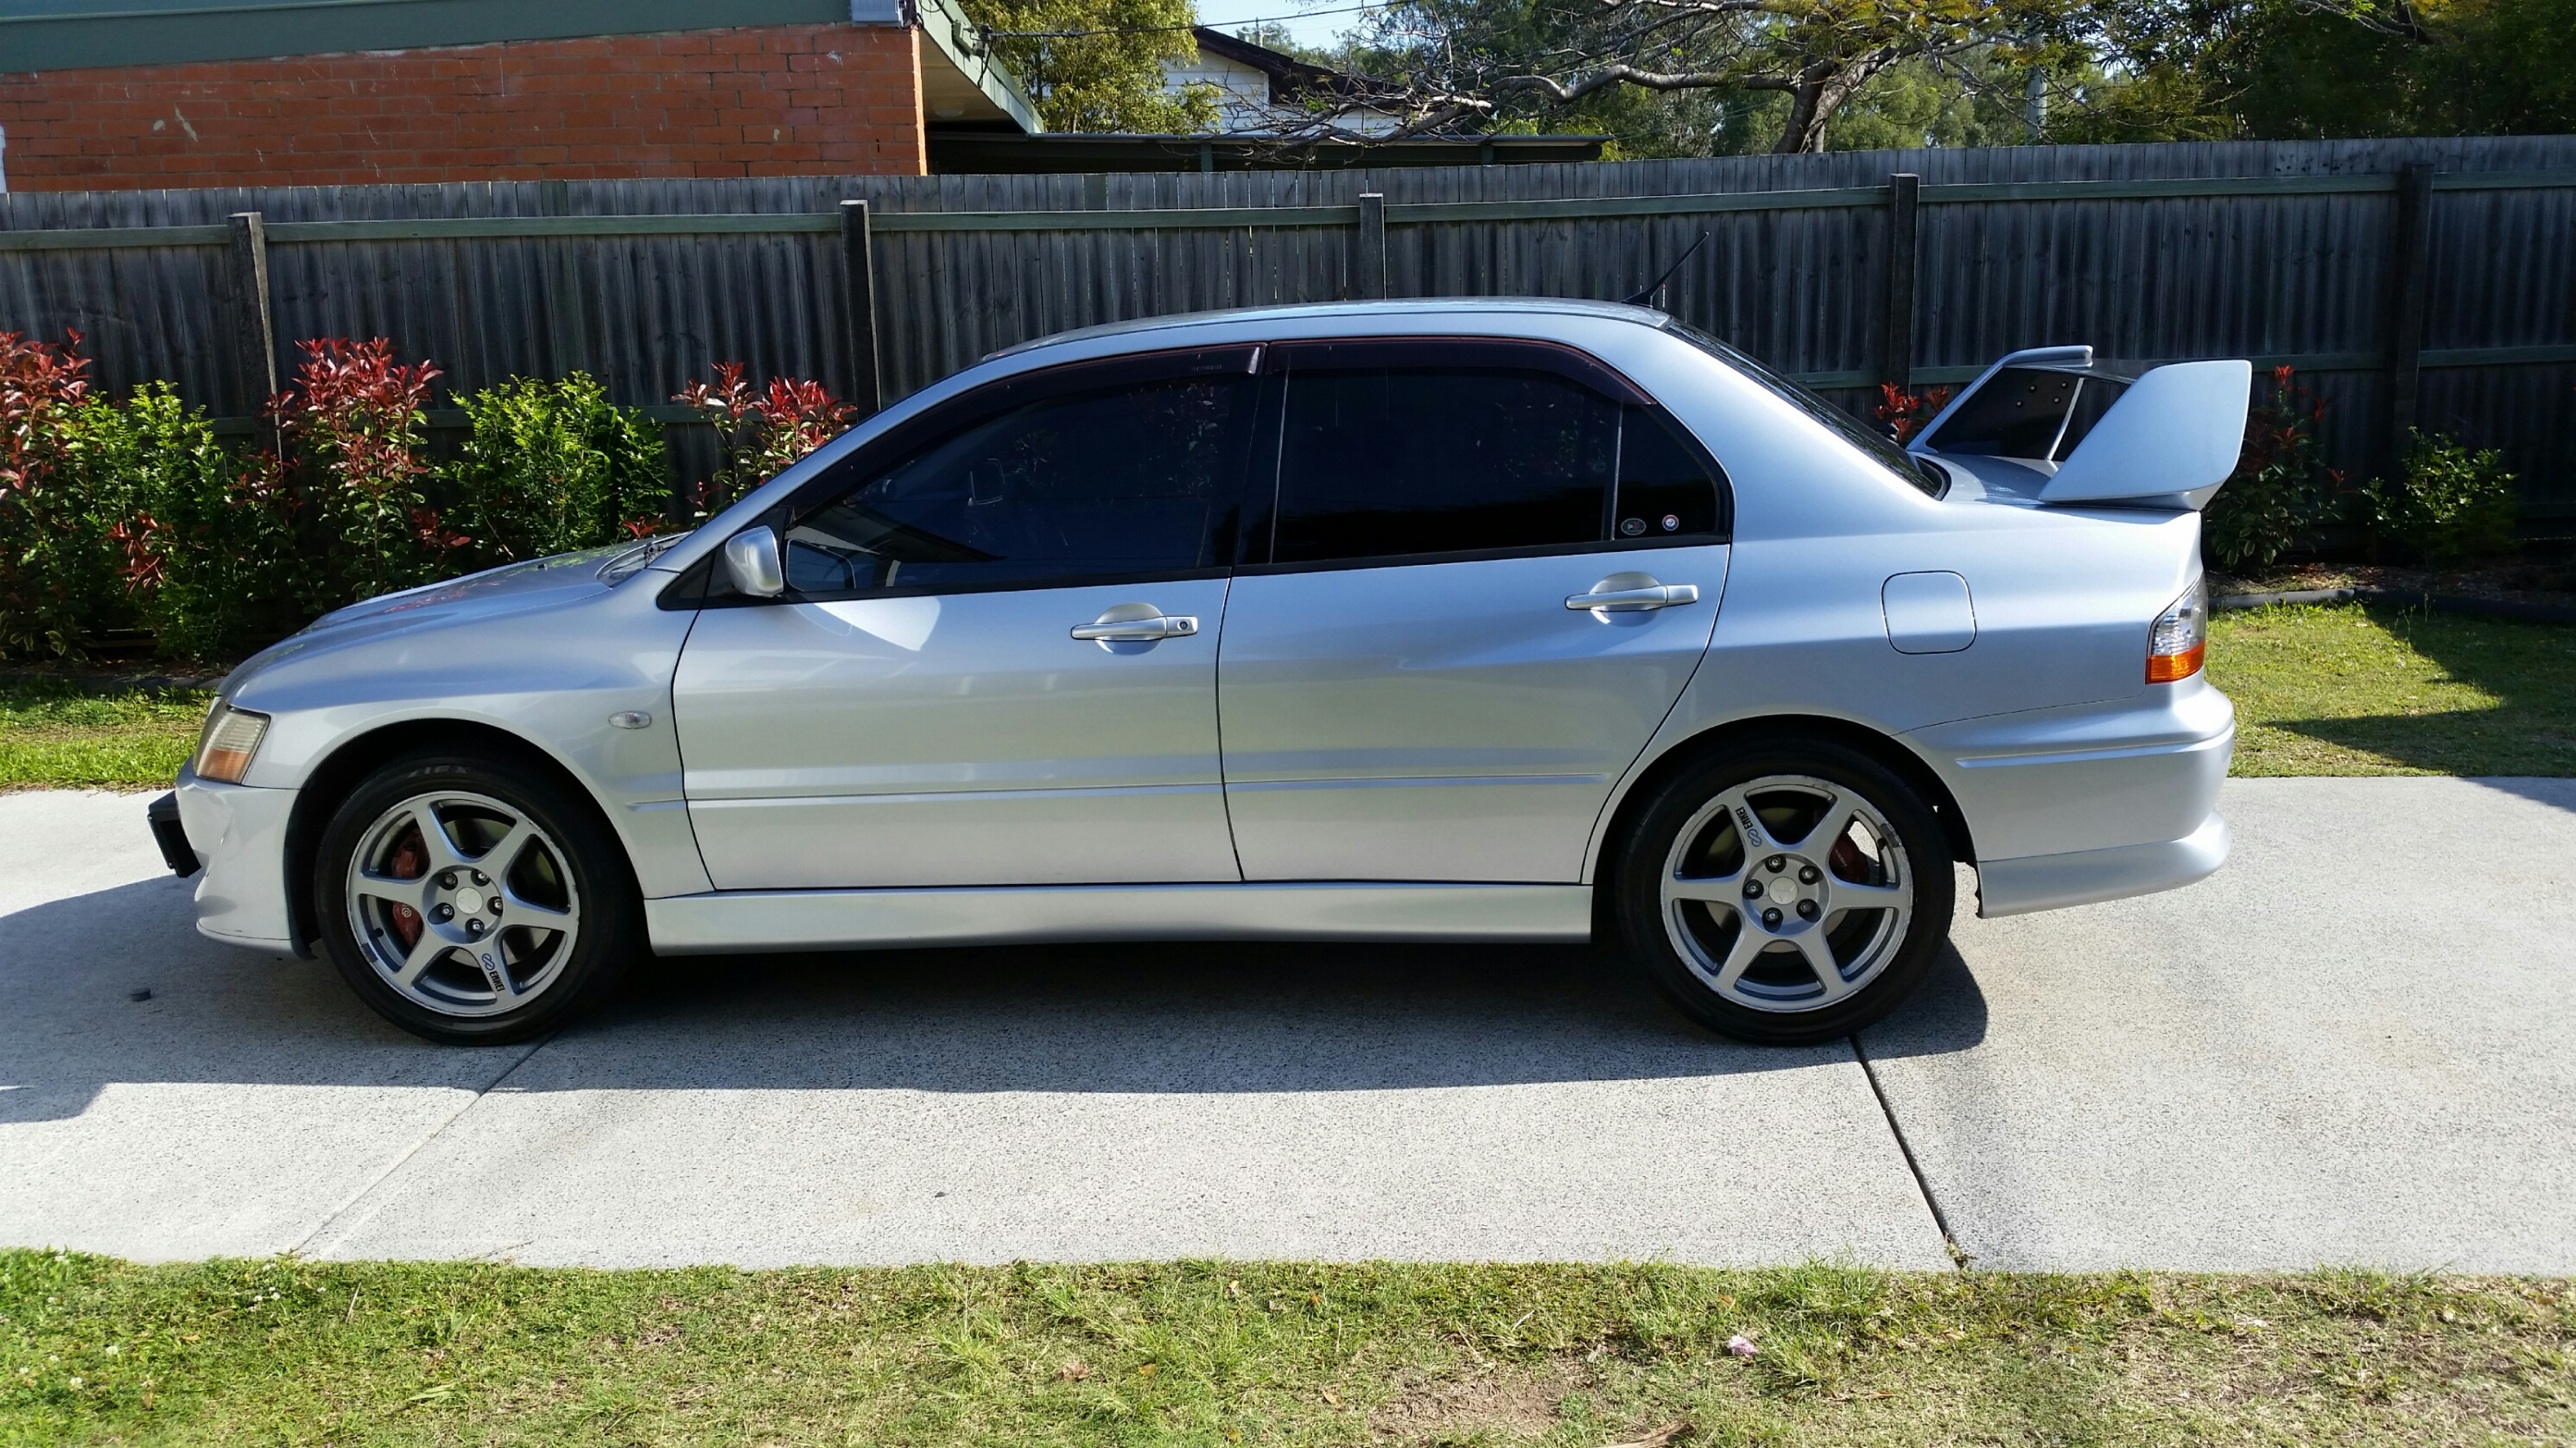 2003 mitsubishi lancer ralliart evolution viii cz car sales qld brisbane 2912766. Black Bedroom Furniture Sets. Home Design Ideas